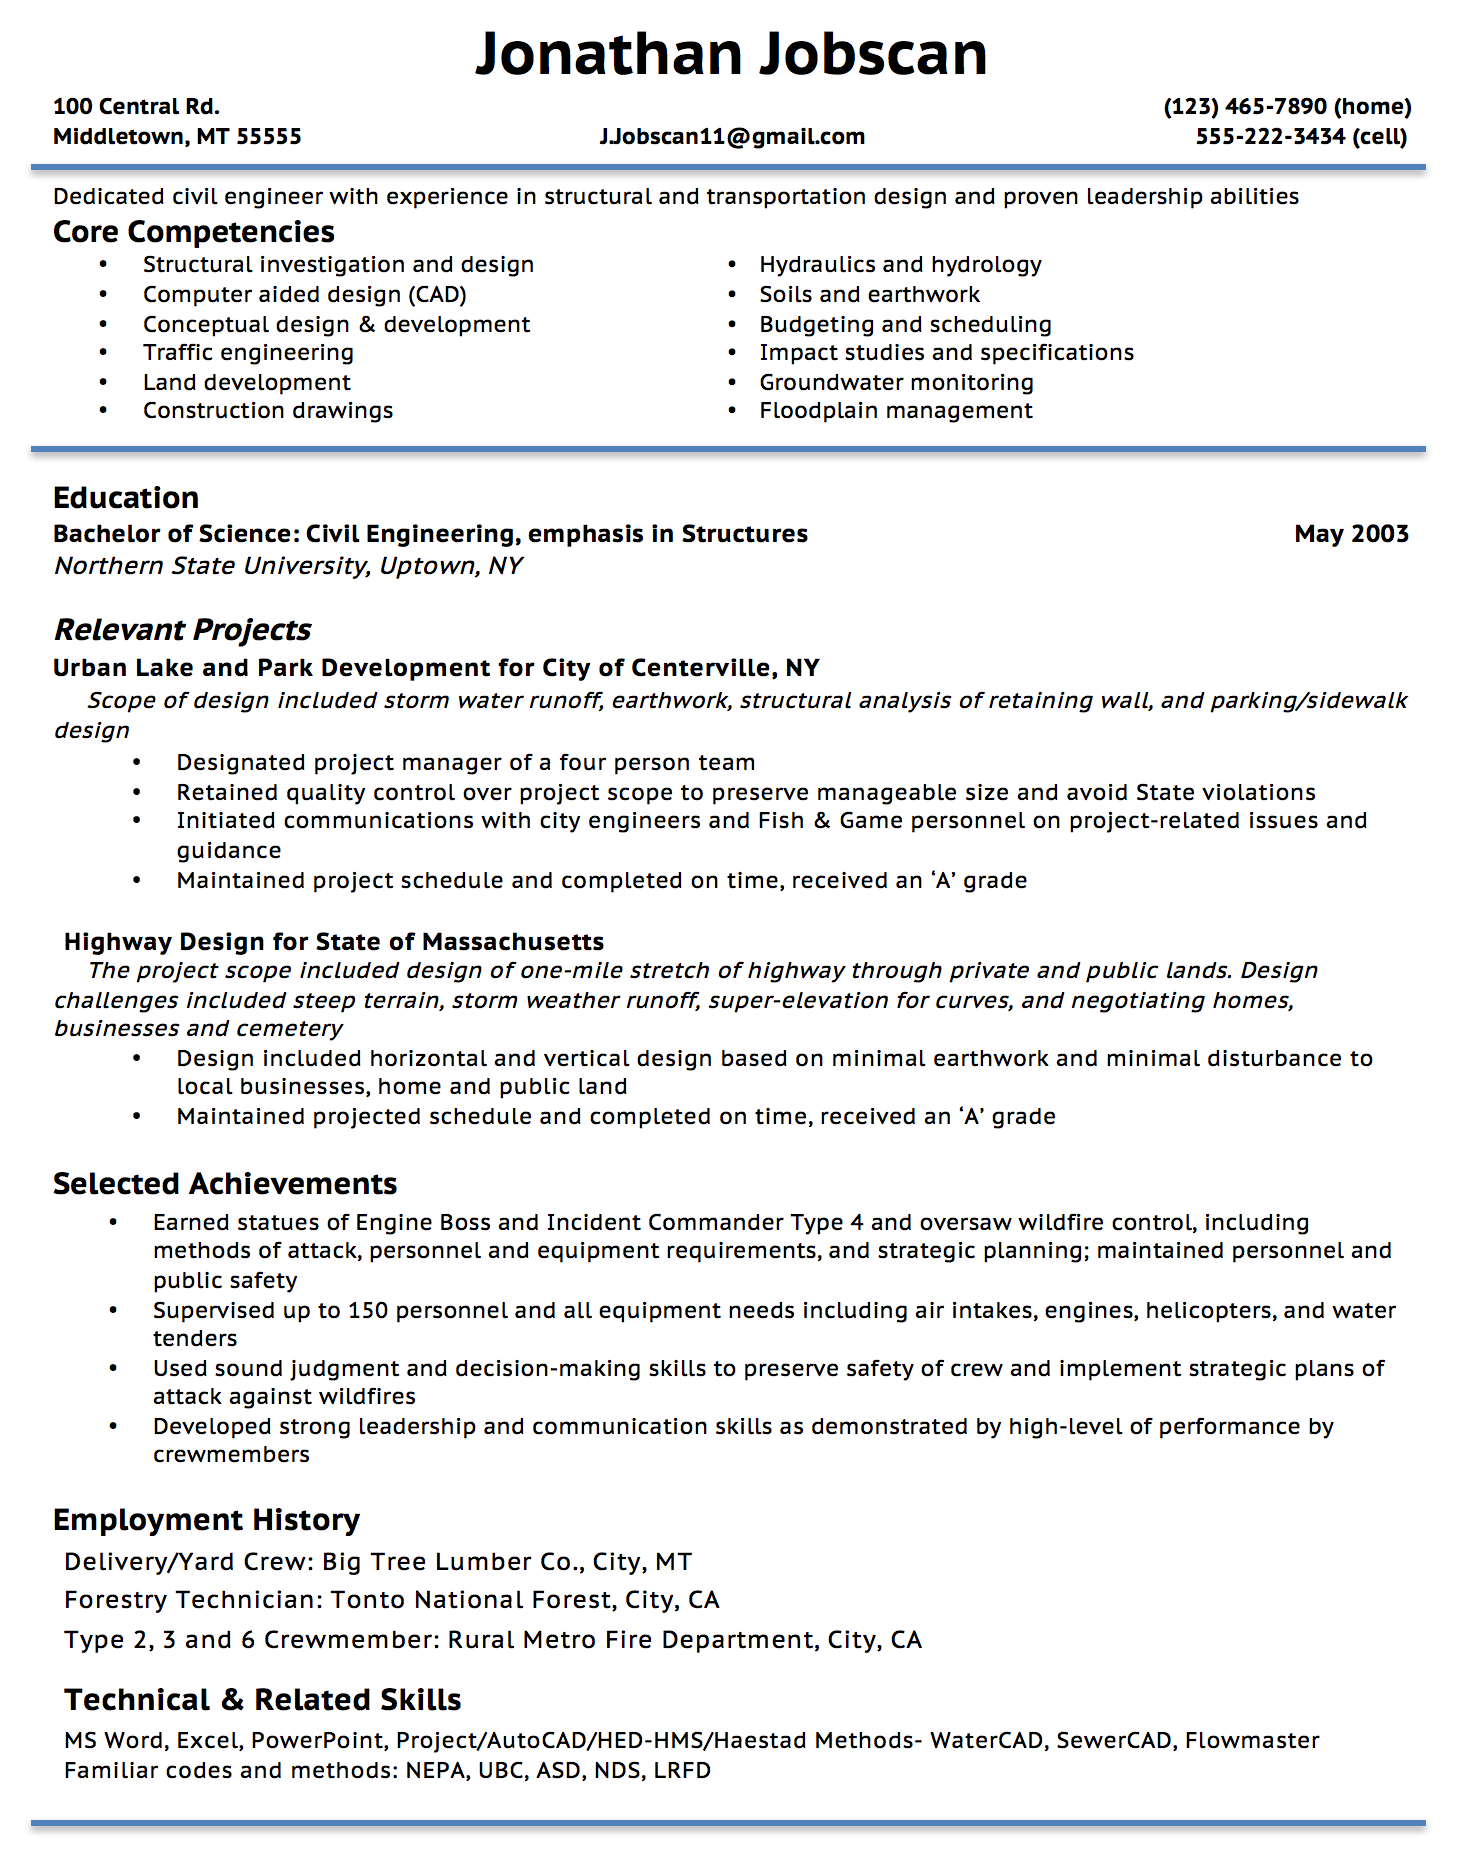 Functional Resume Example  Resume Skills Summary